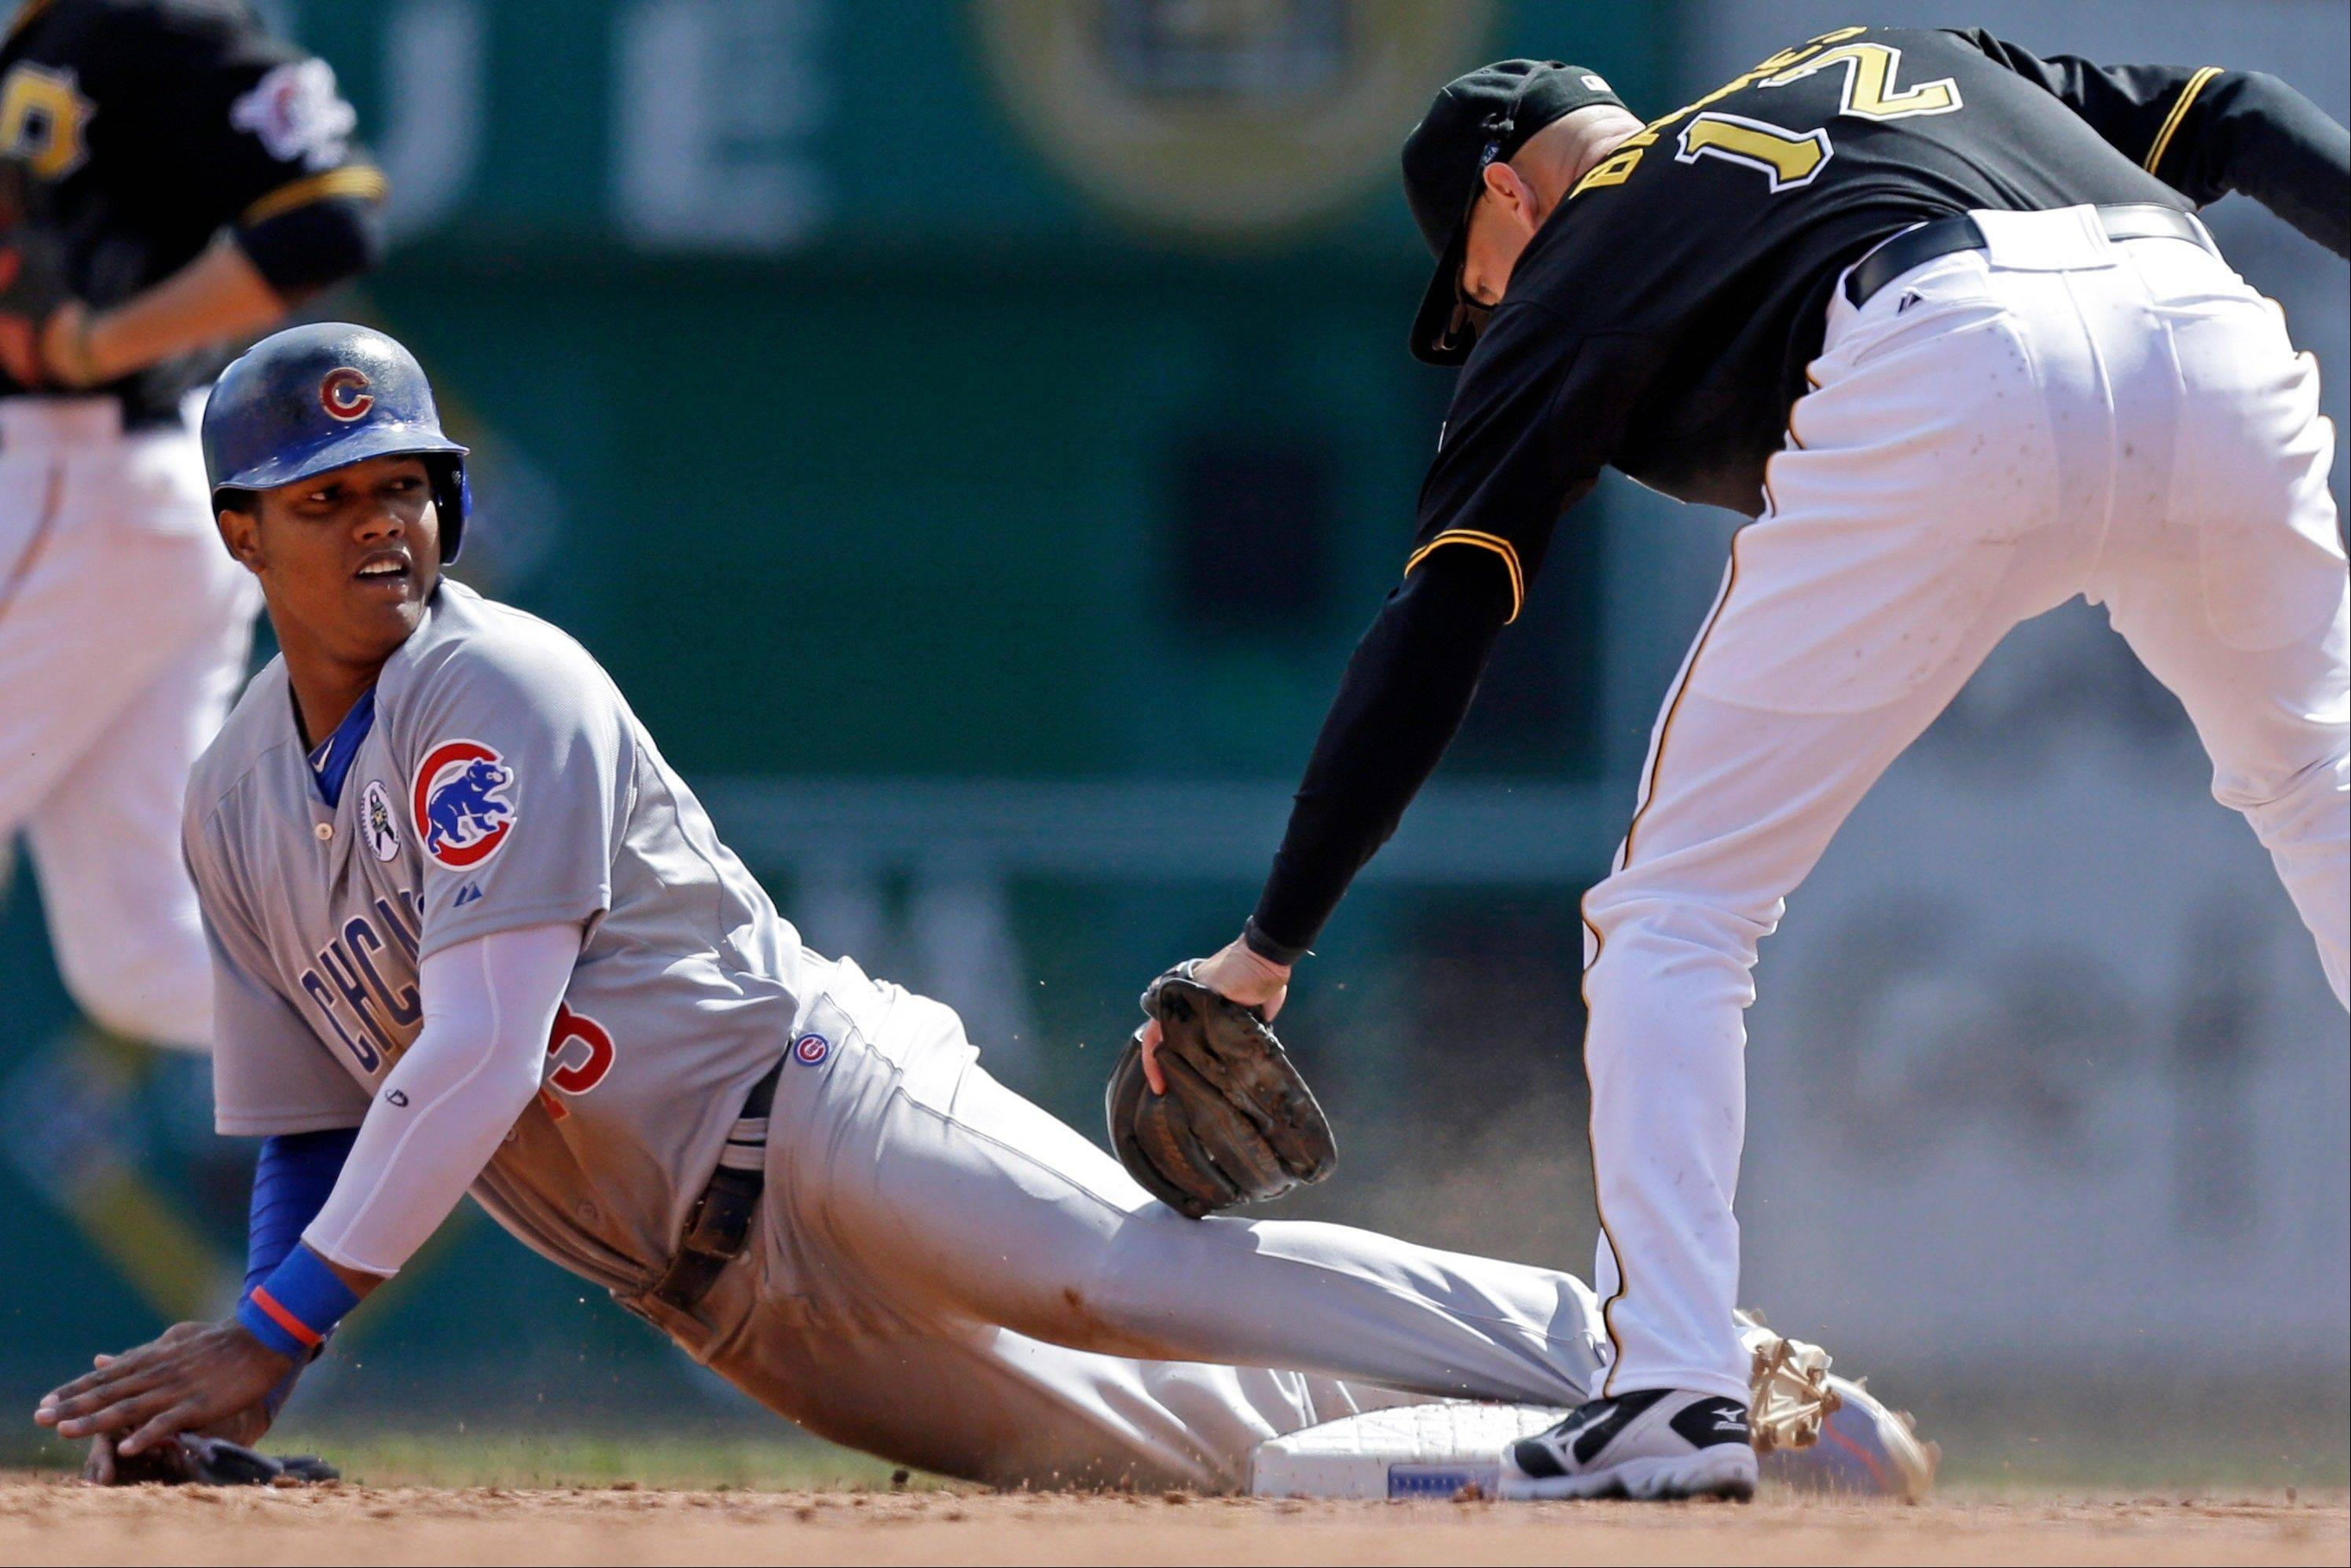 Chicago Cubs shortstop Starlin Castro steals second base as Pittsburgh Pirates shortstop Clint Barmes applies the late tag during the third inning.